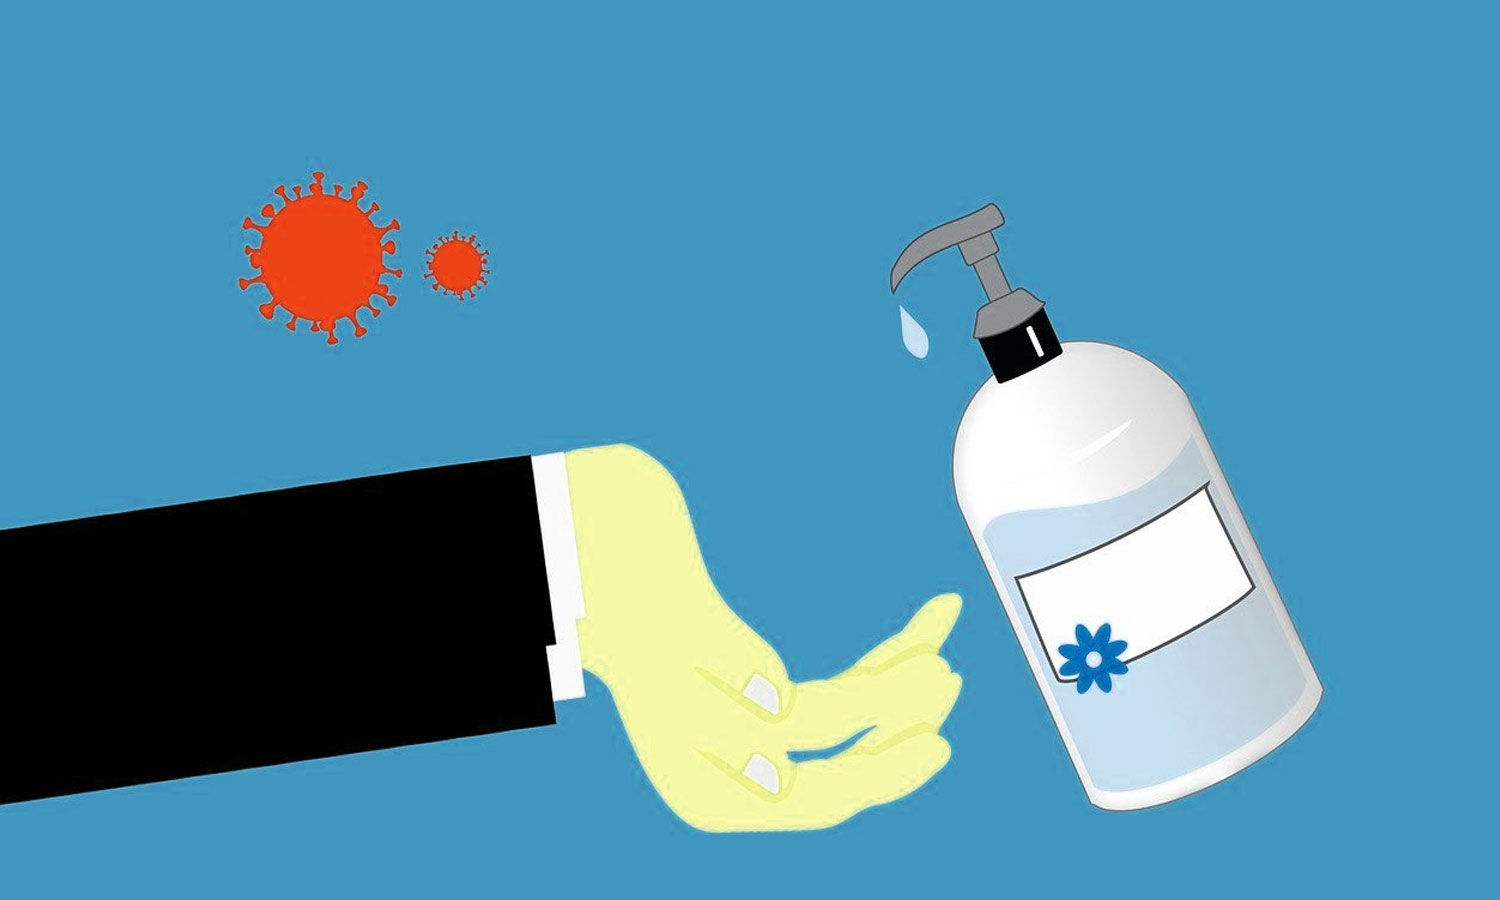 IHBT scientists develop new hand-sanitizer